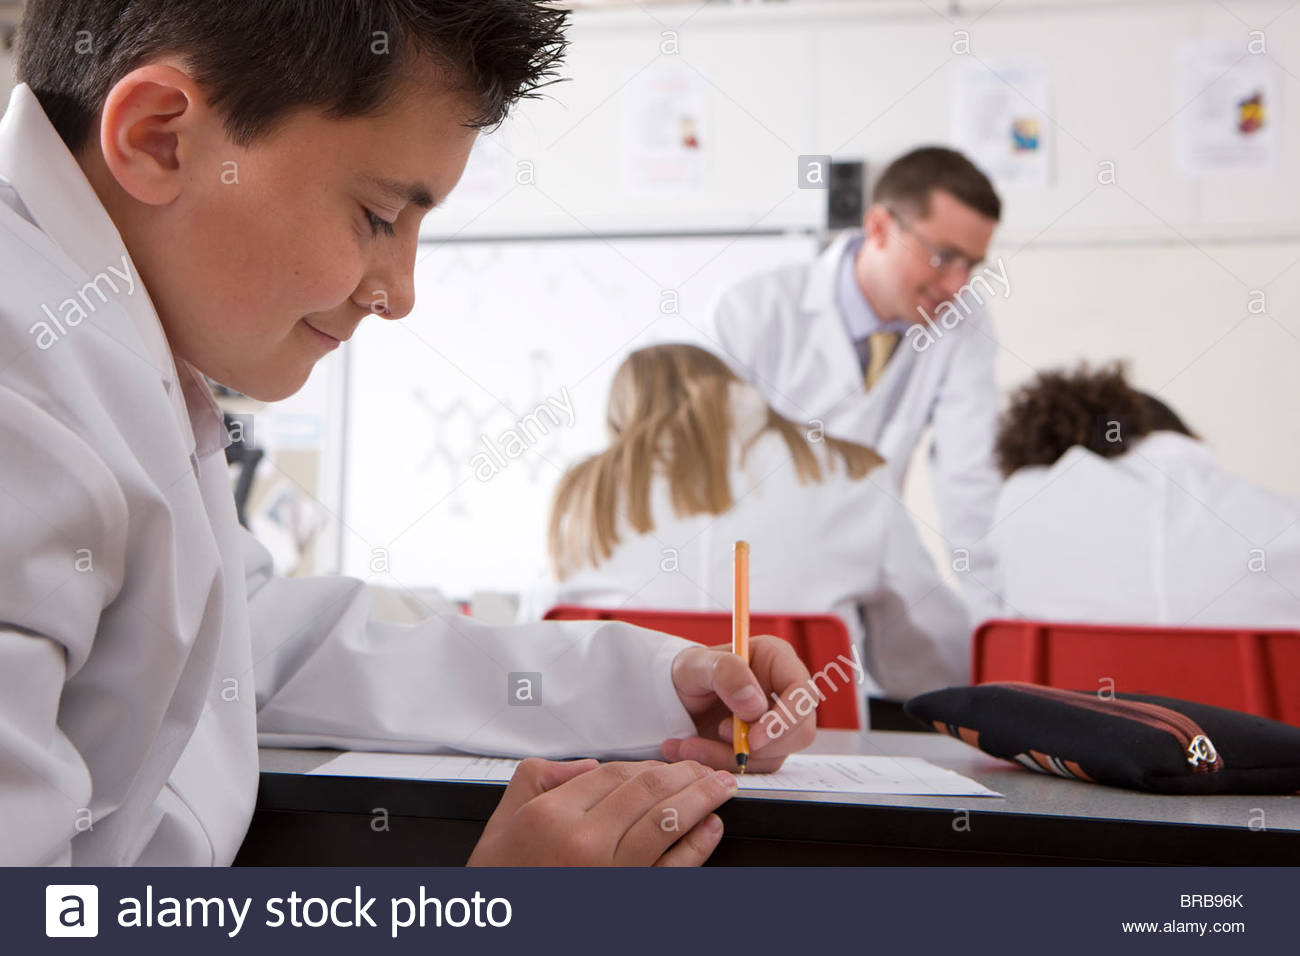 School boy taking test in school chemistry lab - Stock Image